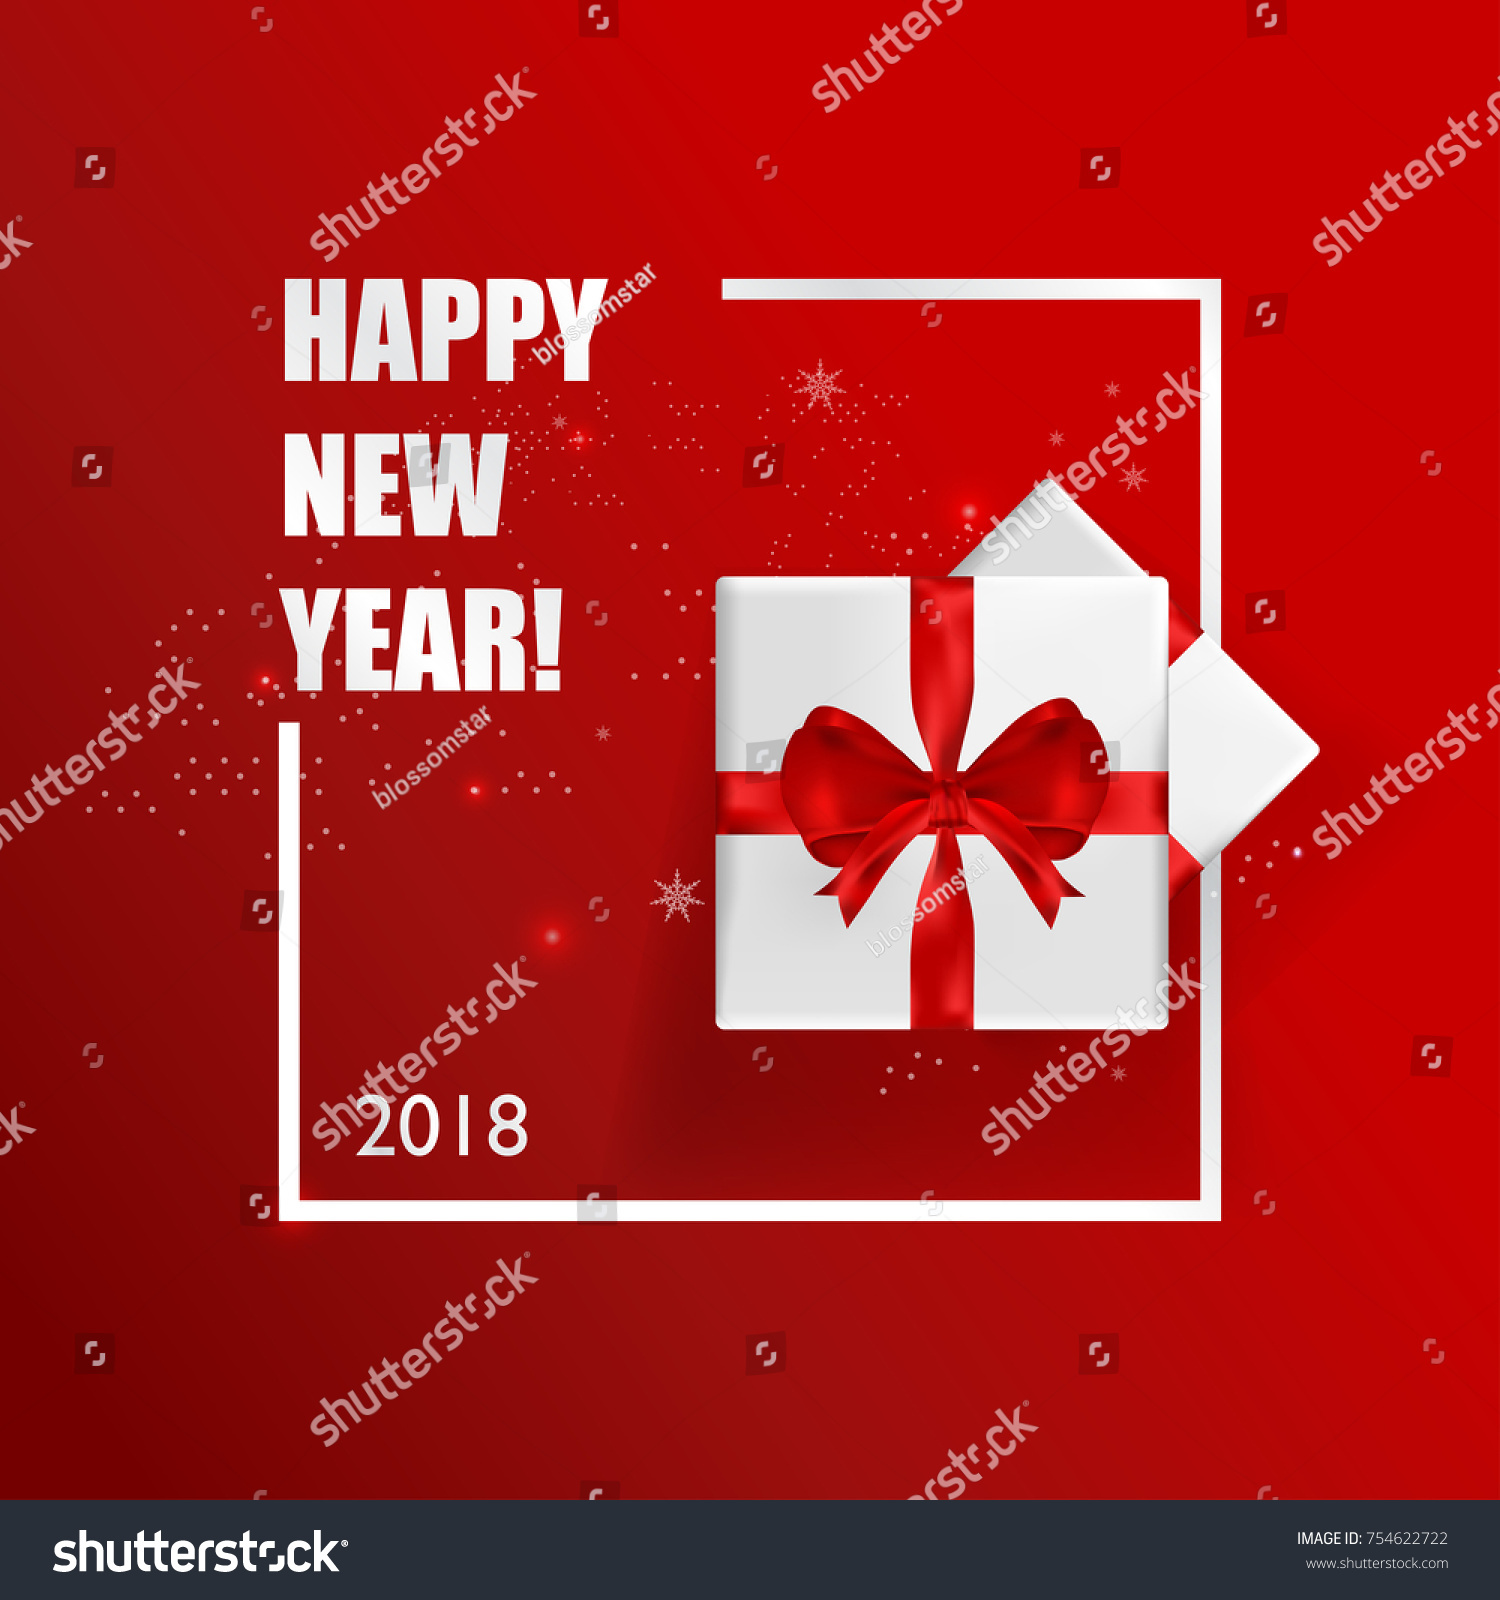 New years greeting card vector illustration stock vector 754622722 new years greeting card vector illustration happy new year 2018 on red background for greeting kristyandbryce Images